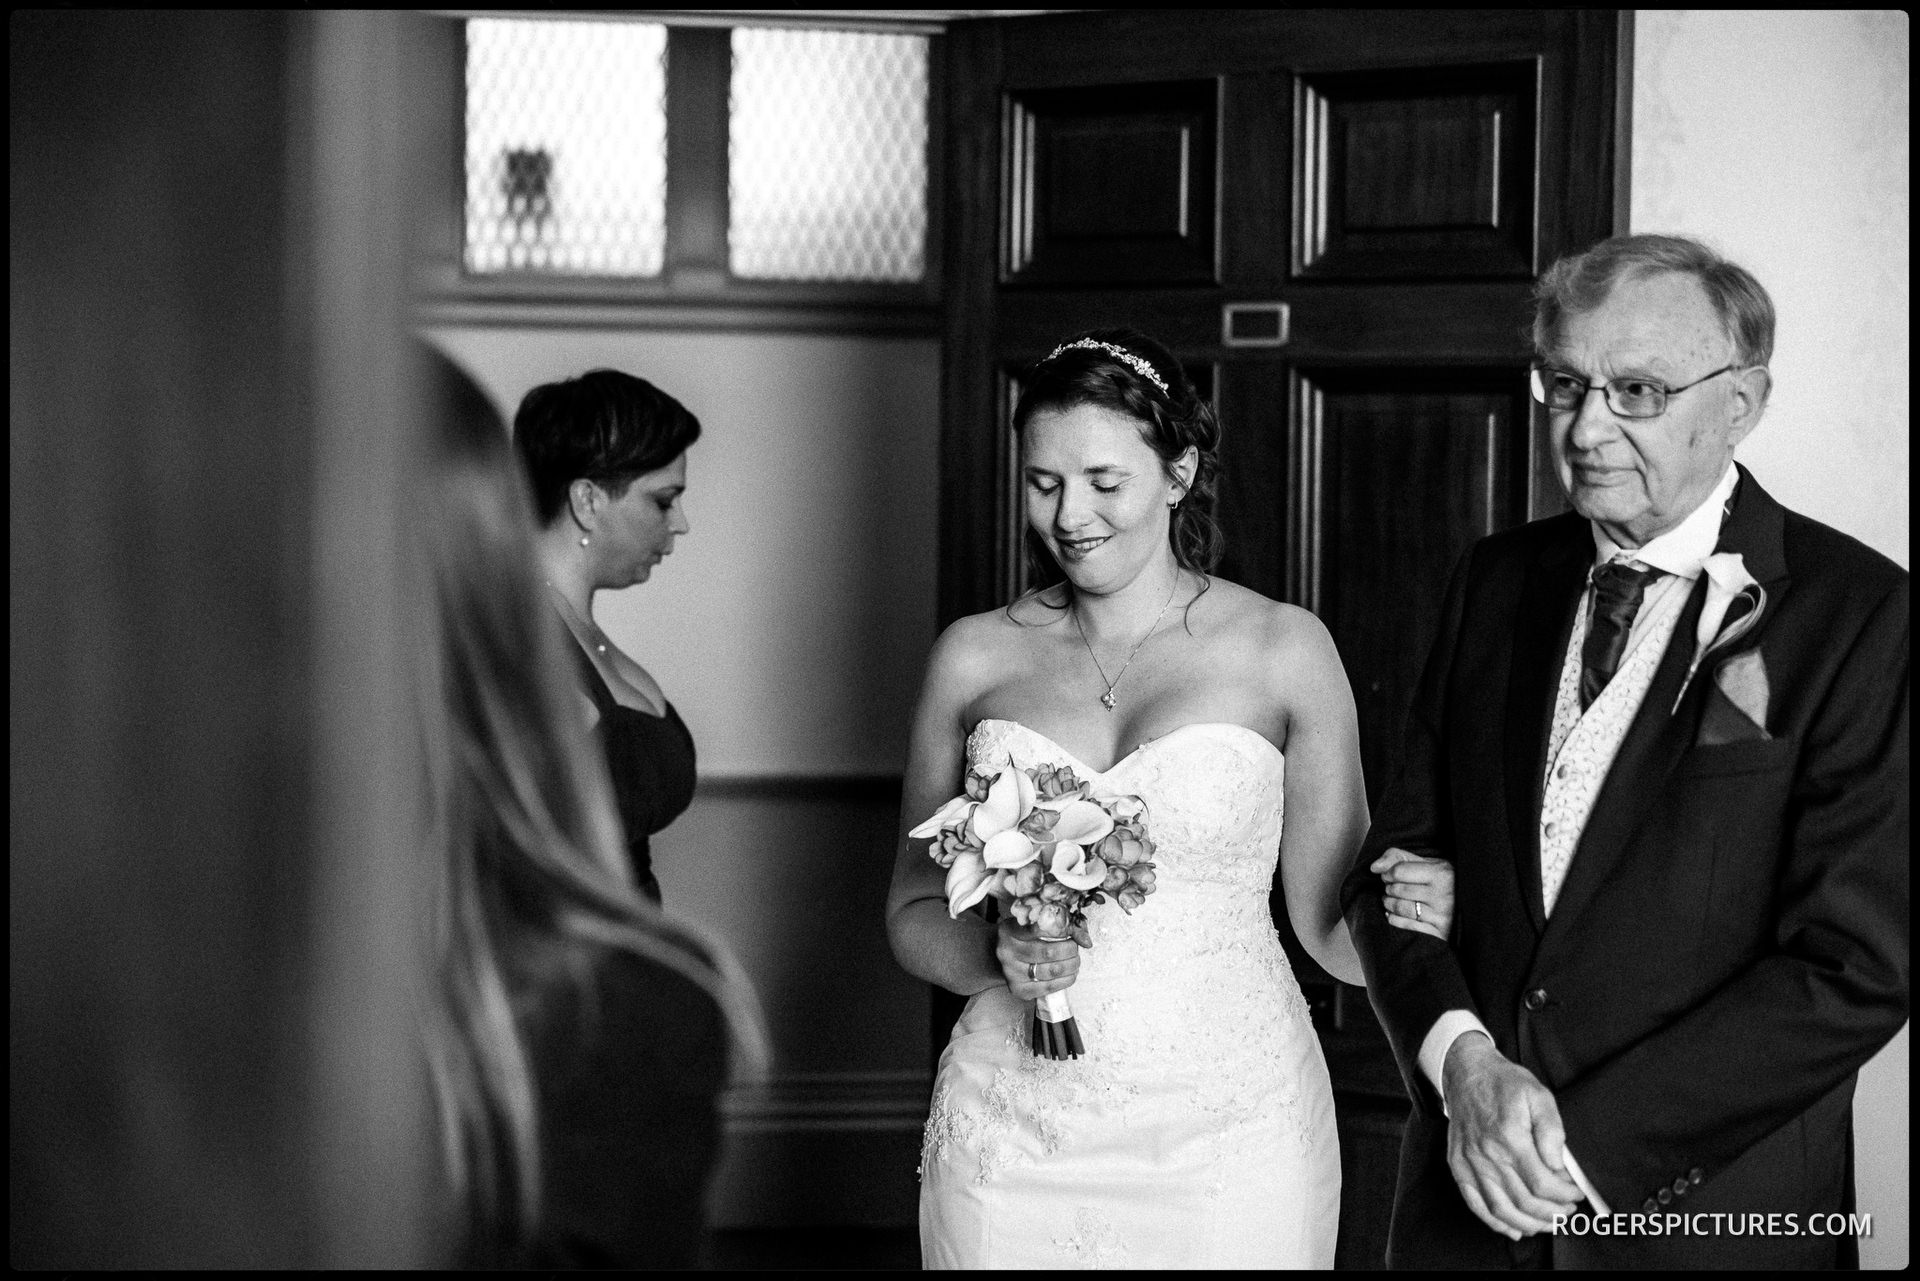 Nervous looking Bride